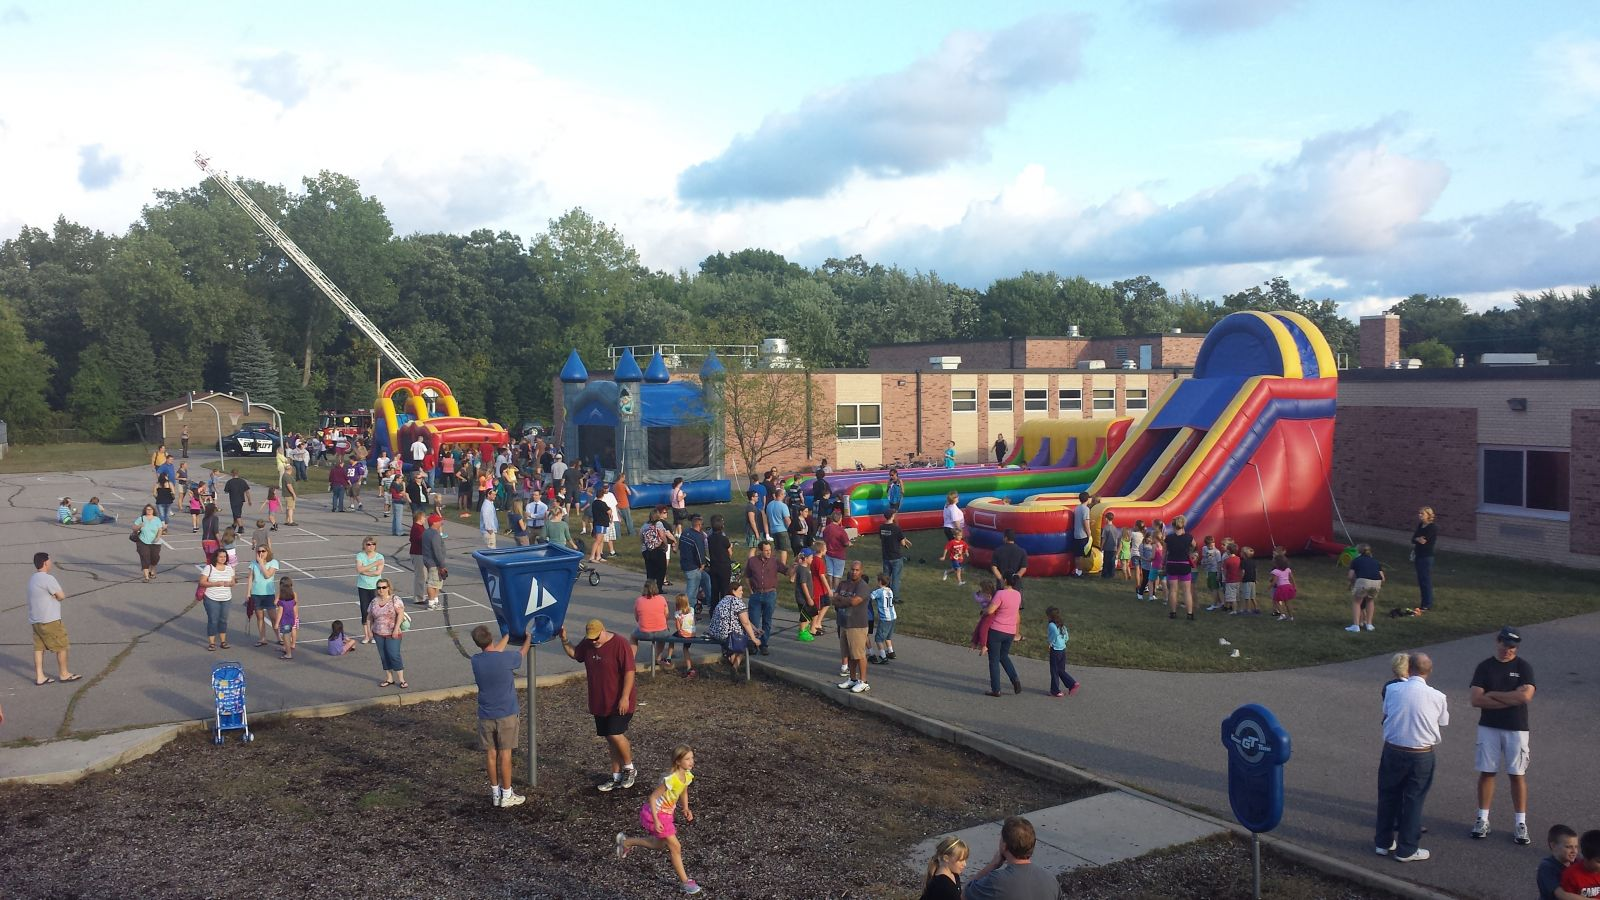 School carnival with Laughs A Lot bounce house, slide, obstacle course, and other inflatables